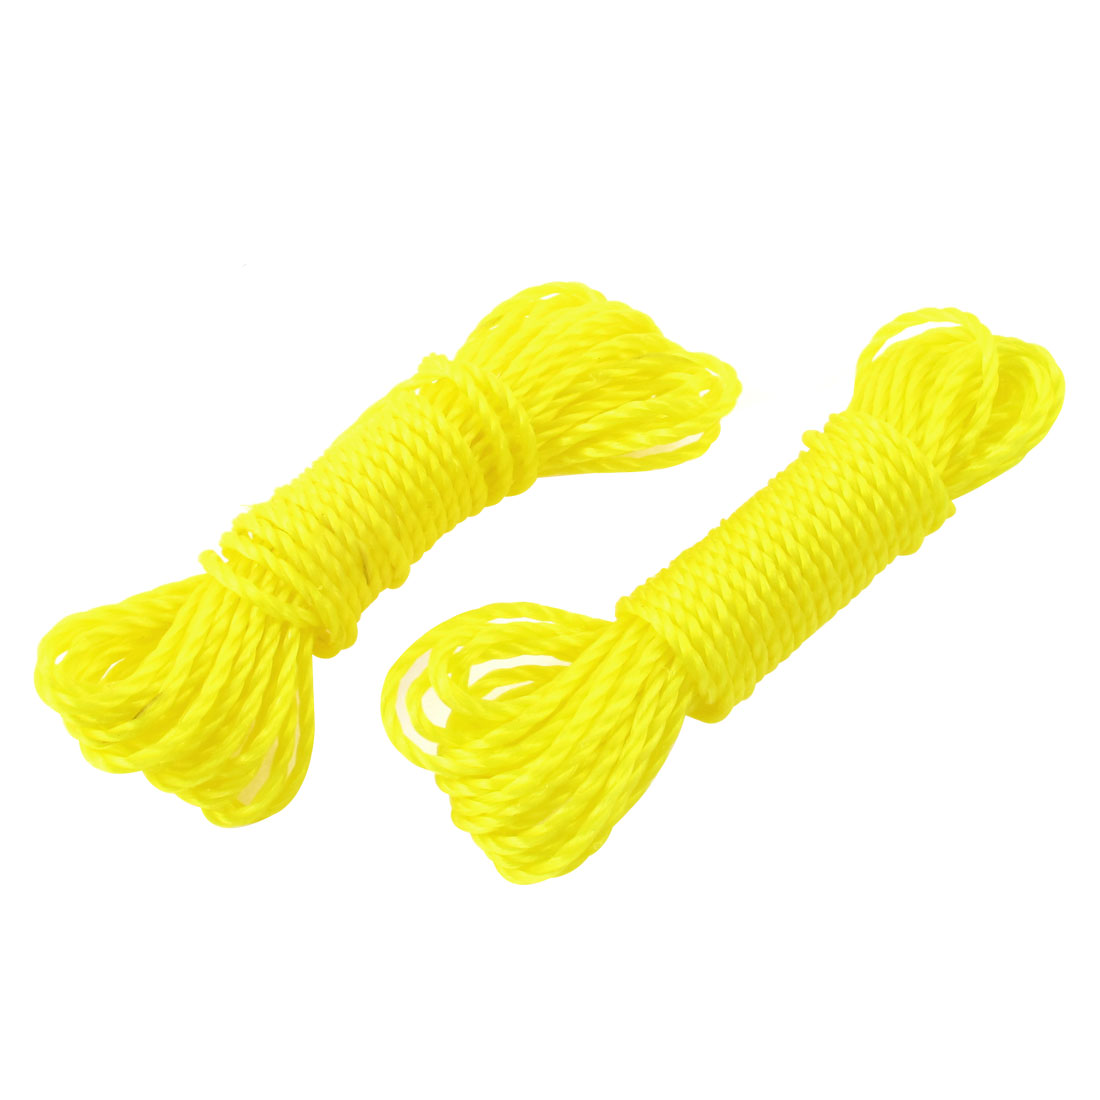 2pcs Nylon Cord String Clothes Dry Hanging Rope Clothesline Yellow 10M Length